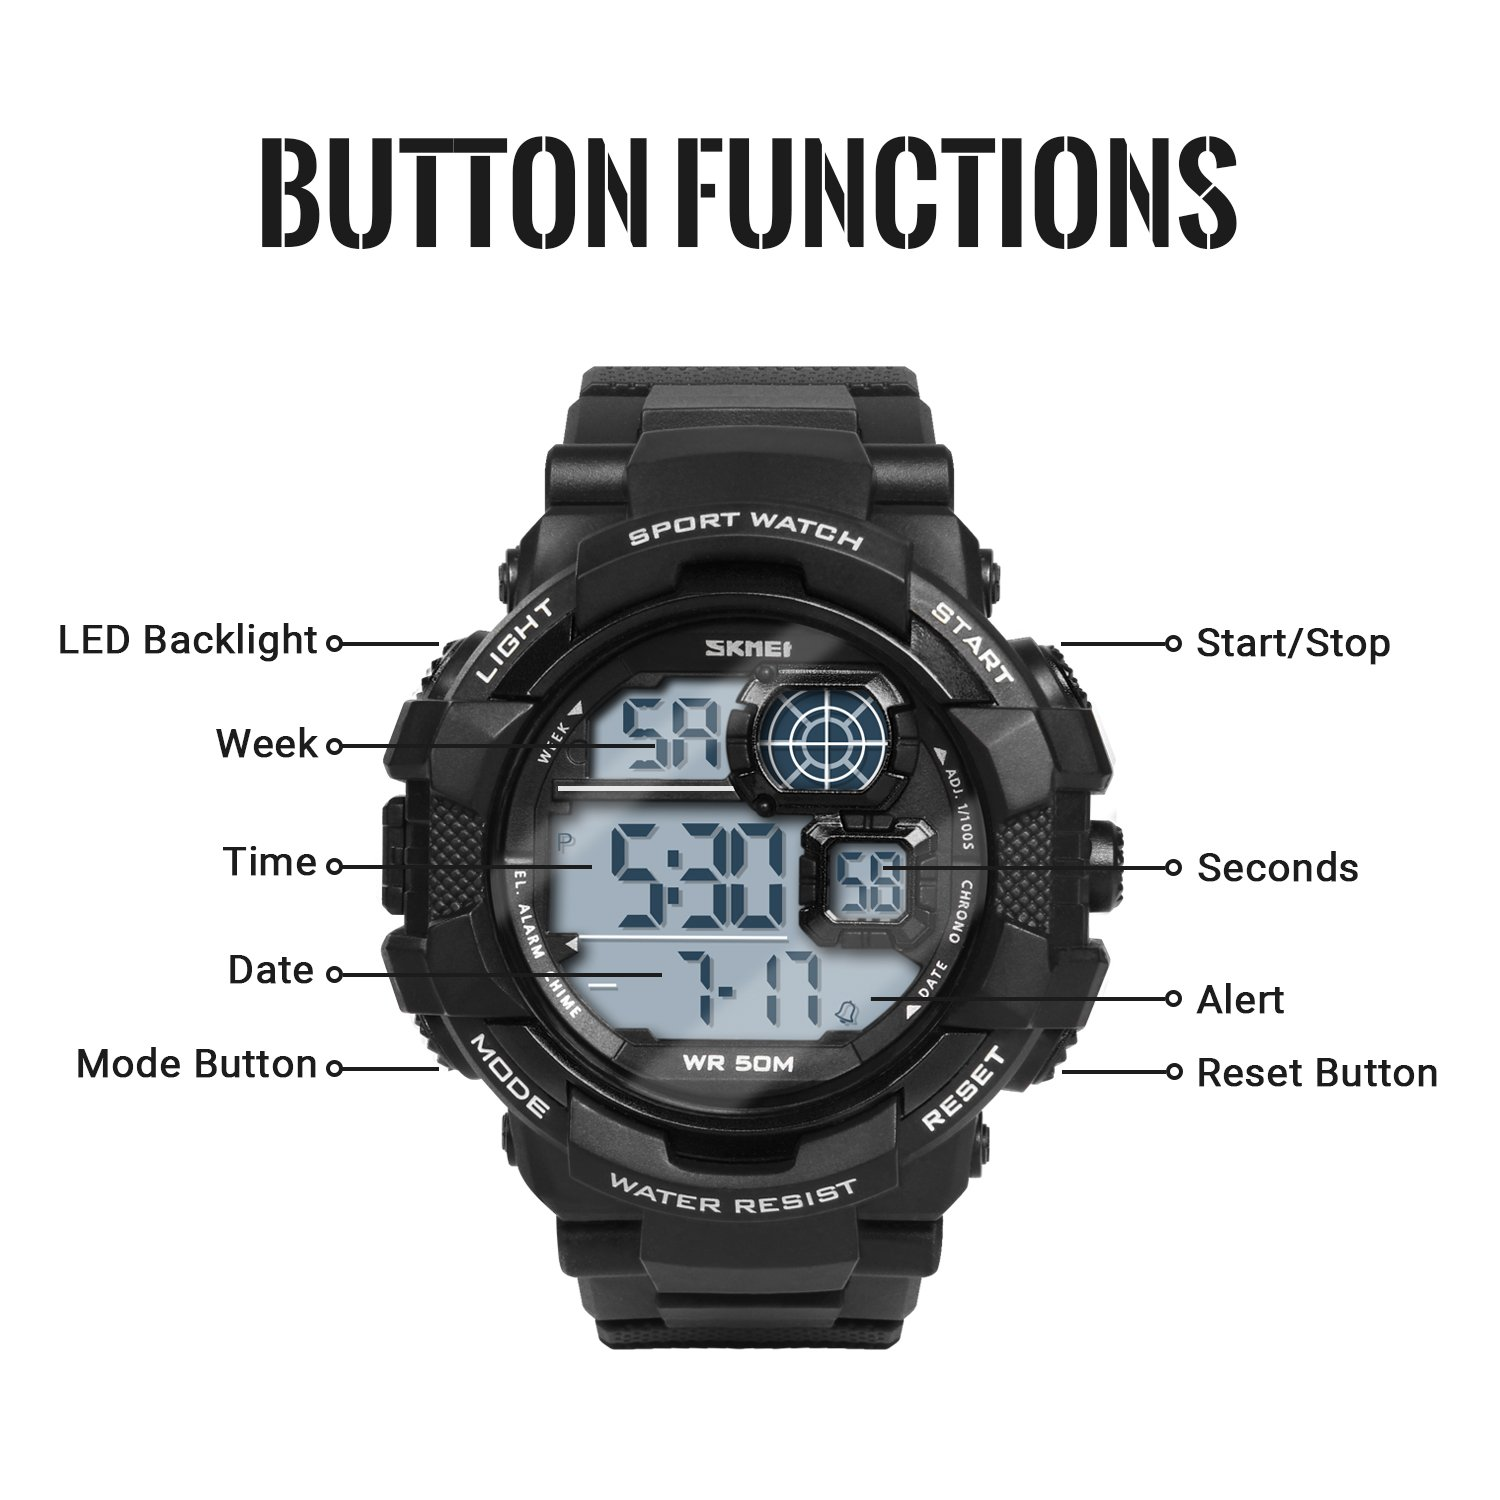 HIwatch Men's Sport Watches LED Military Watches and 50M Waterproof Casual Luminous Stopwatch Alarm Simple Army Watch, Electronic Analog Quartz Watches for Youth Students Gift, Black by Hi Watch (Image #2)